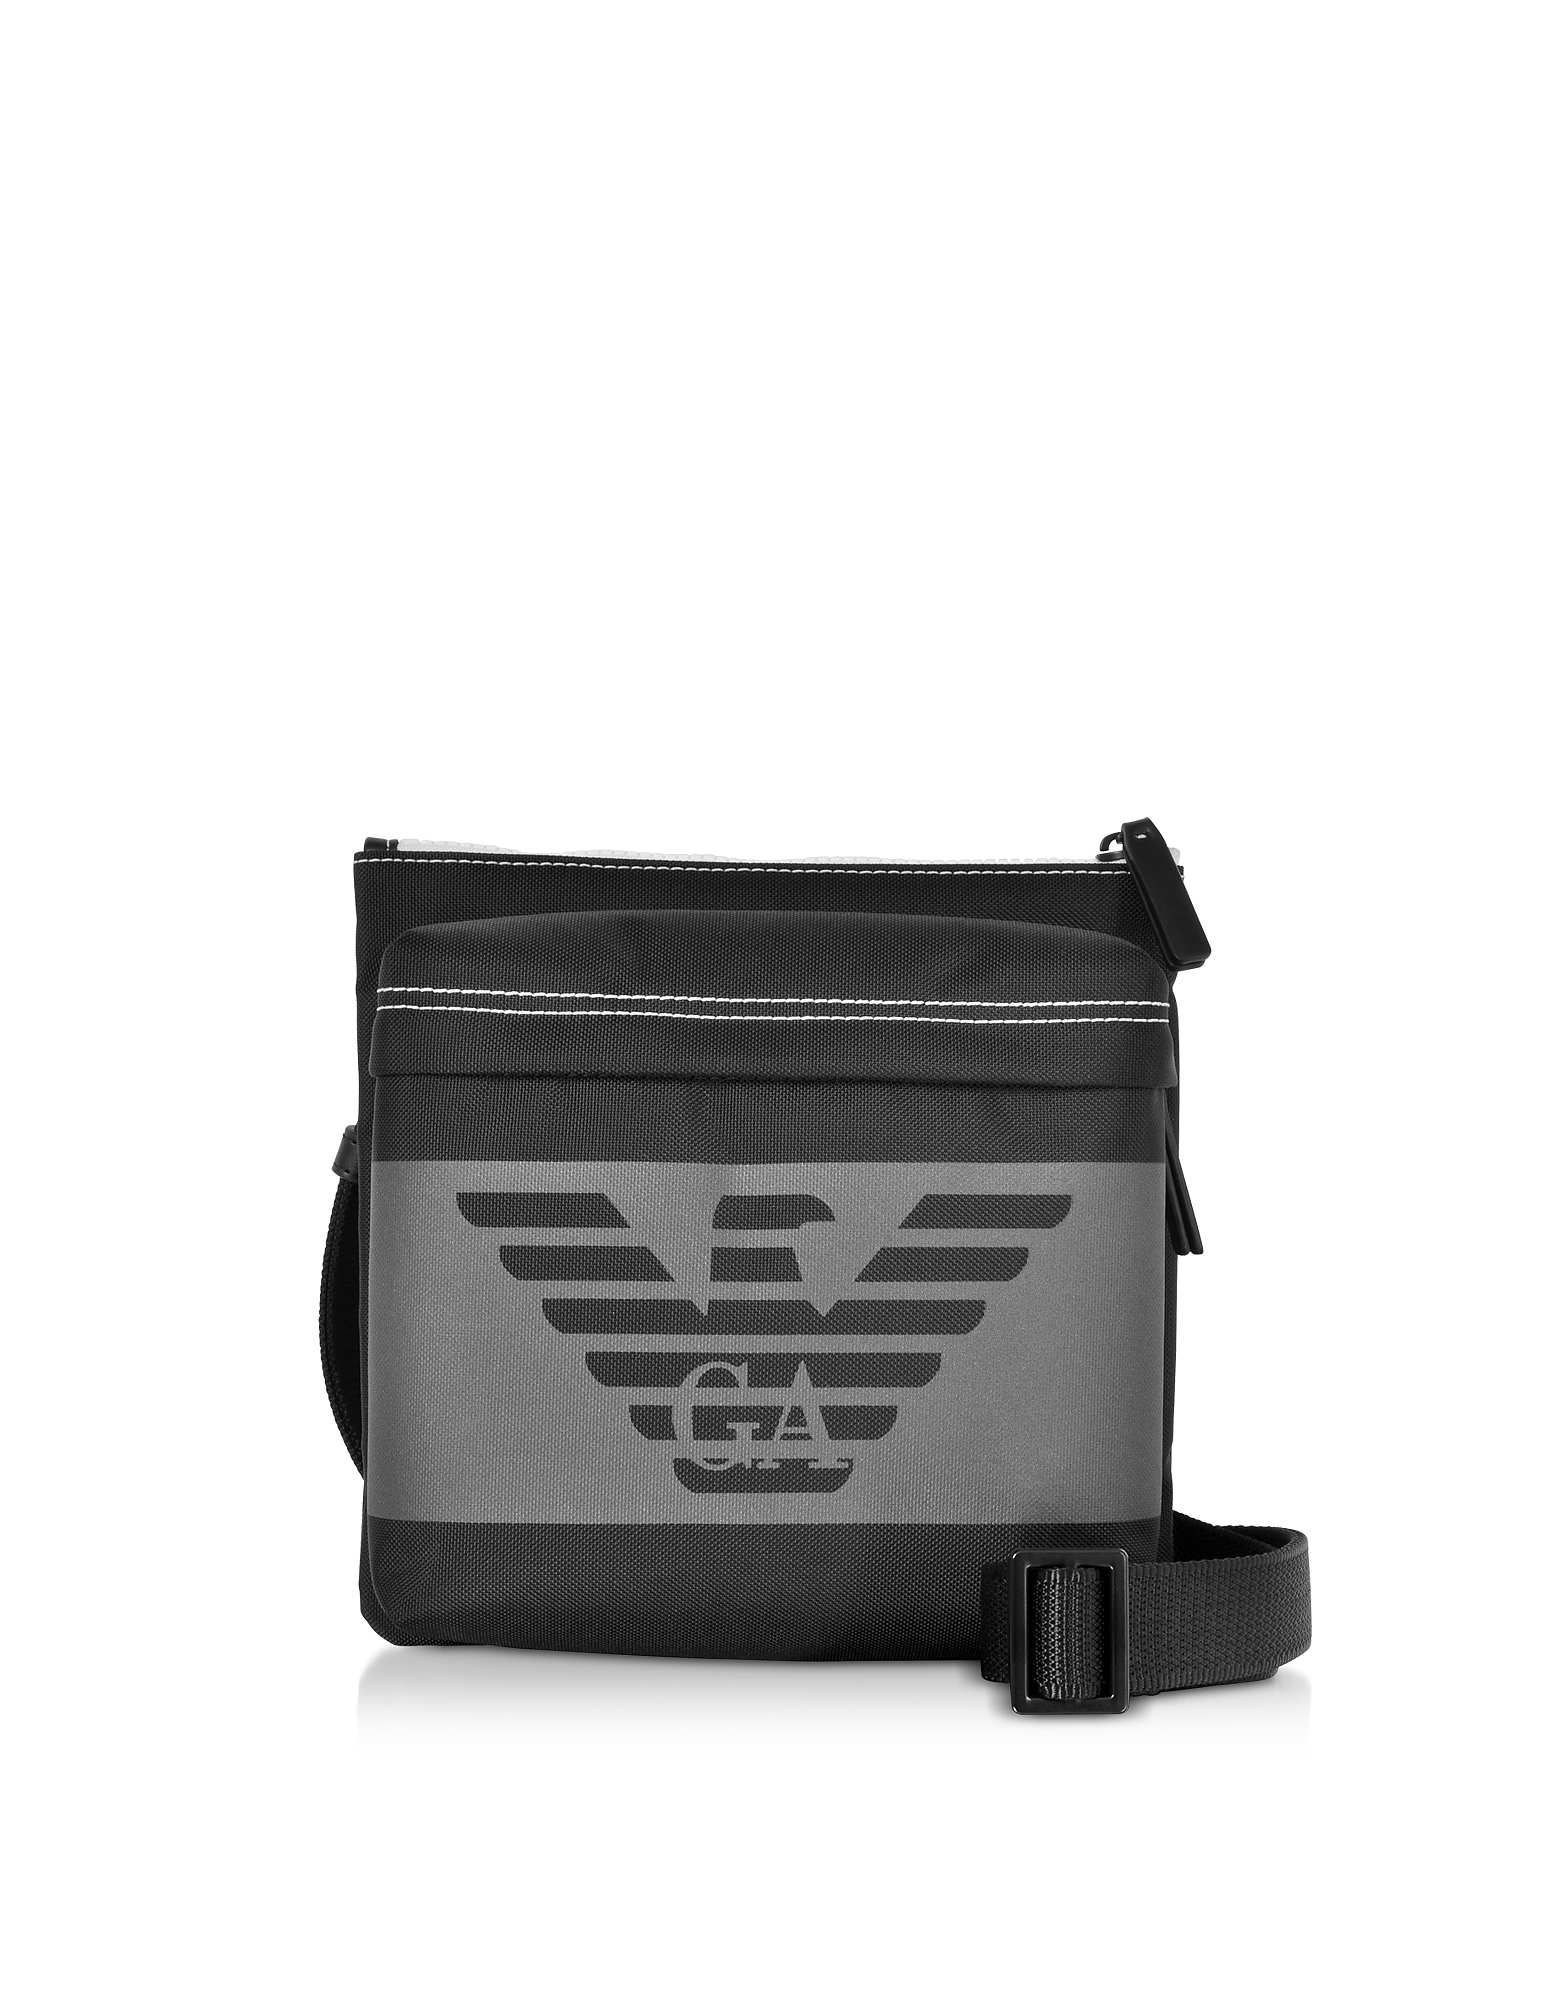 Black Men's Messenger Bag